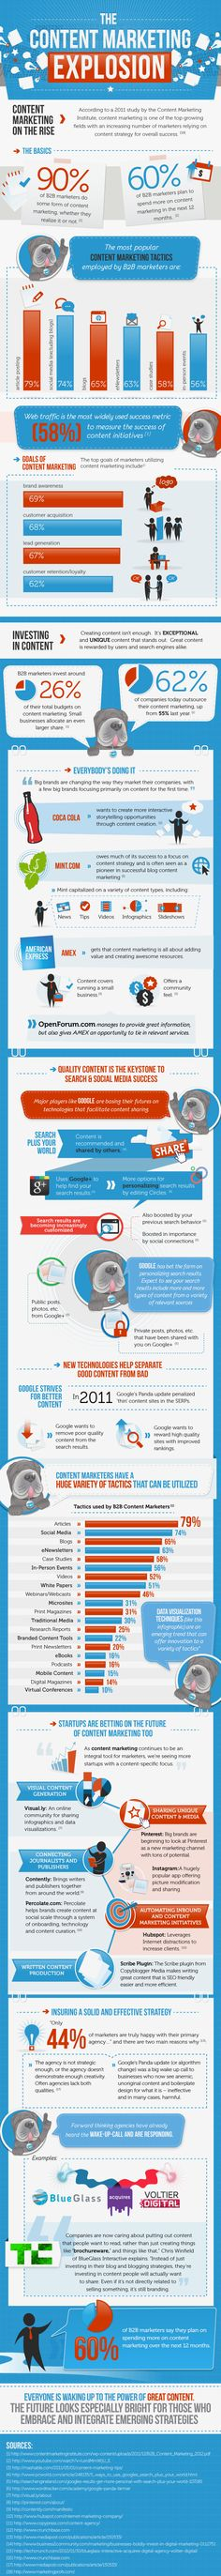 The Content Marketing Explosion